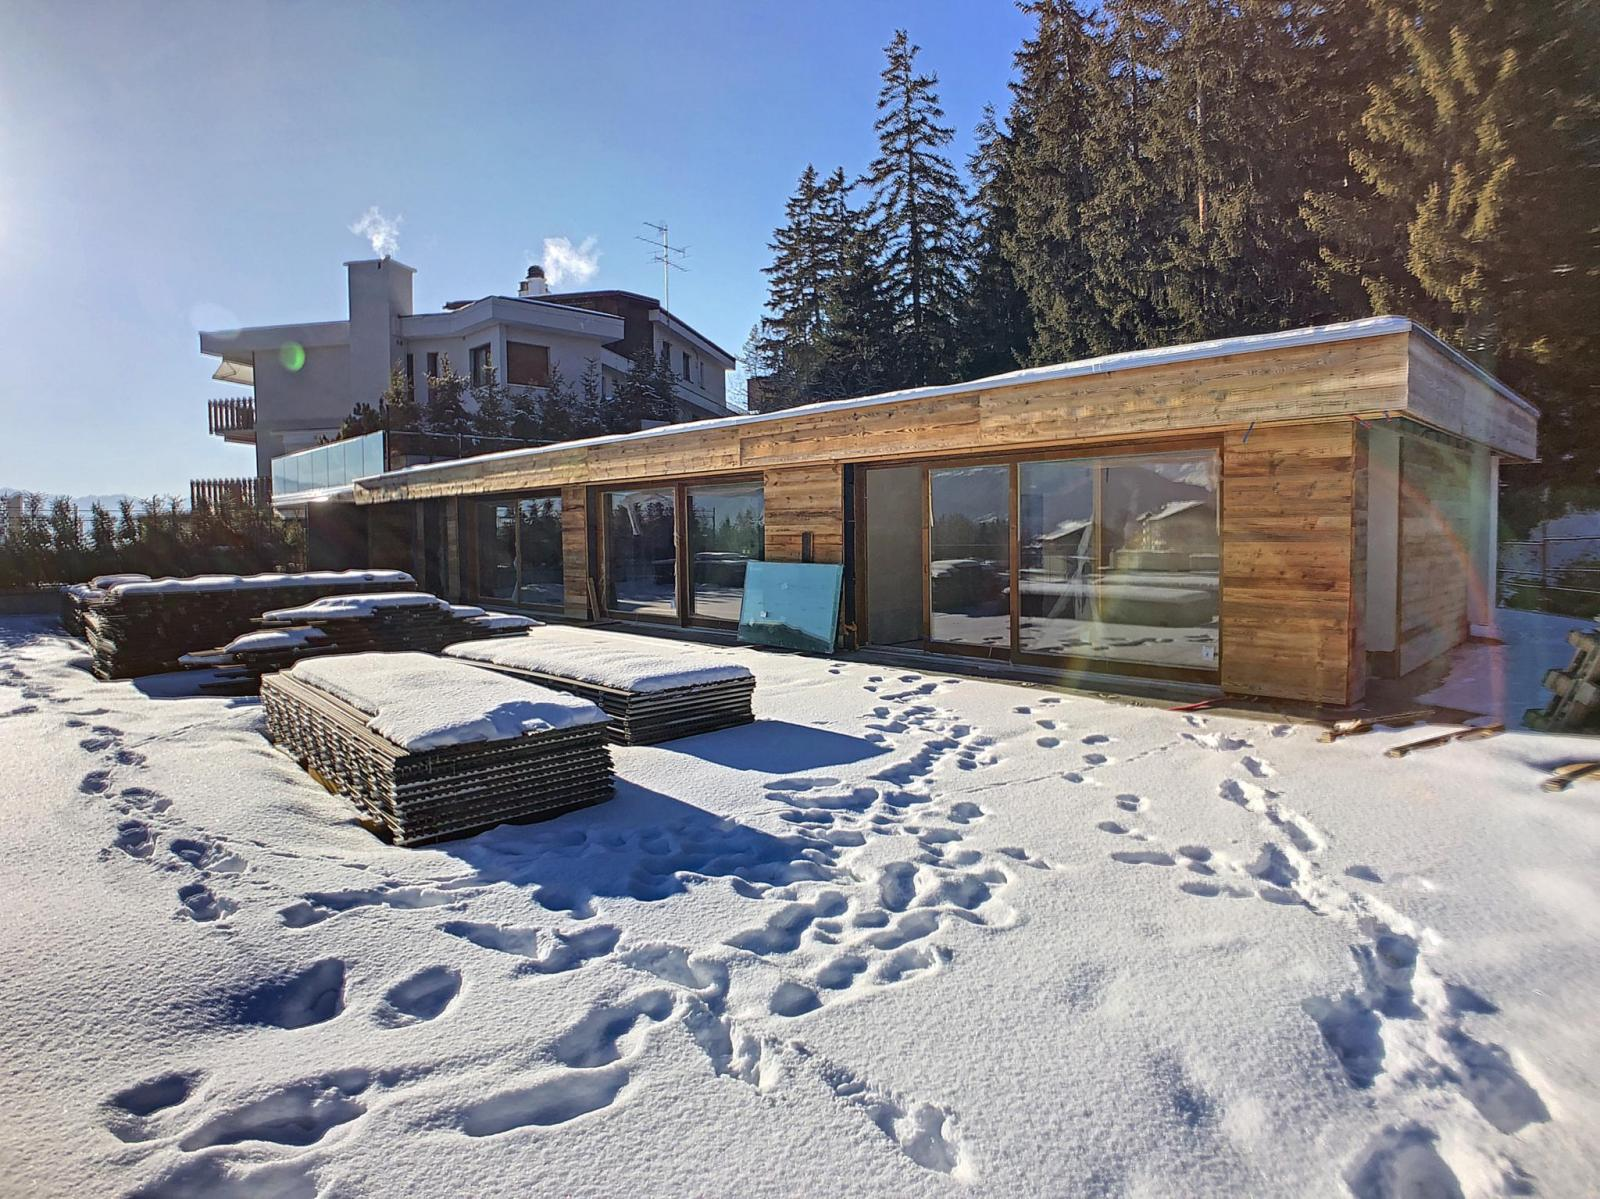 Crans-Montana - in the heart of crans, splendid duplex penthouse + service studio